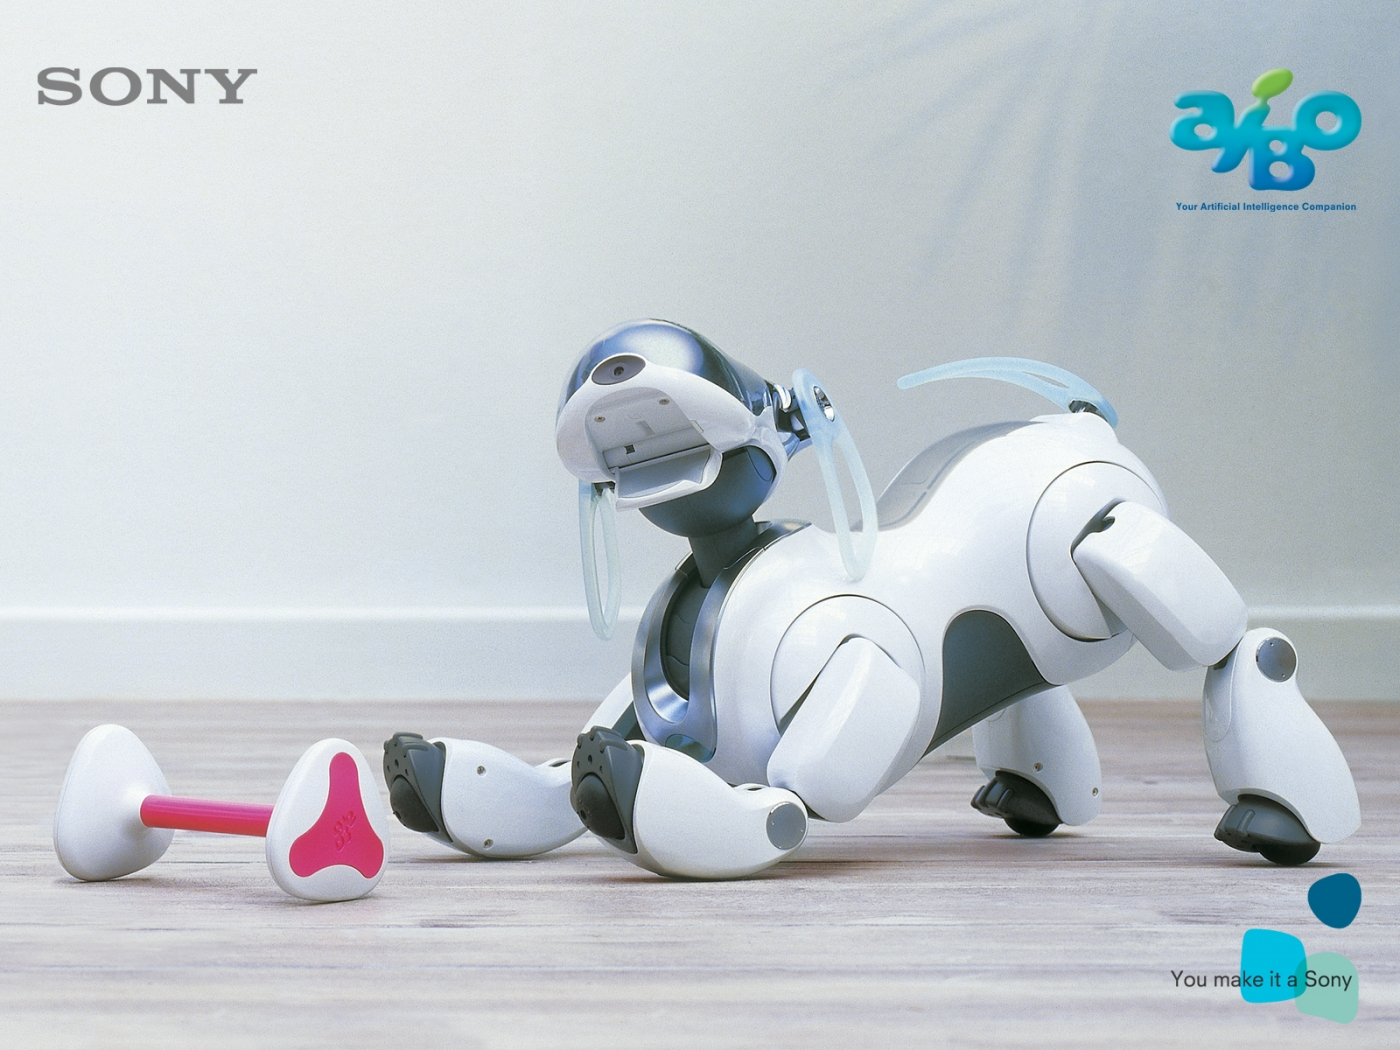 The Sony Aibo ERS-7